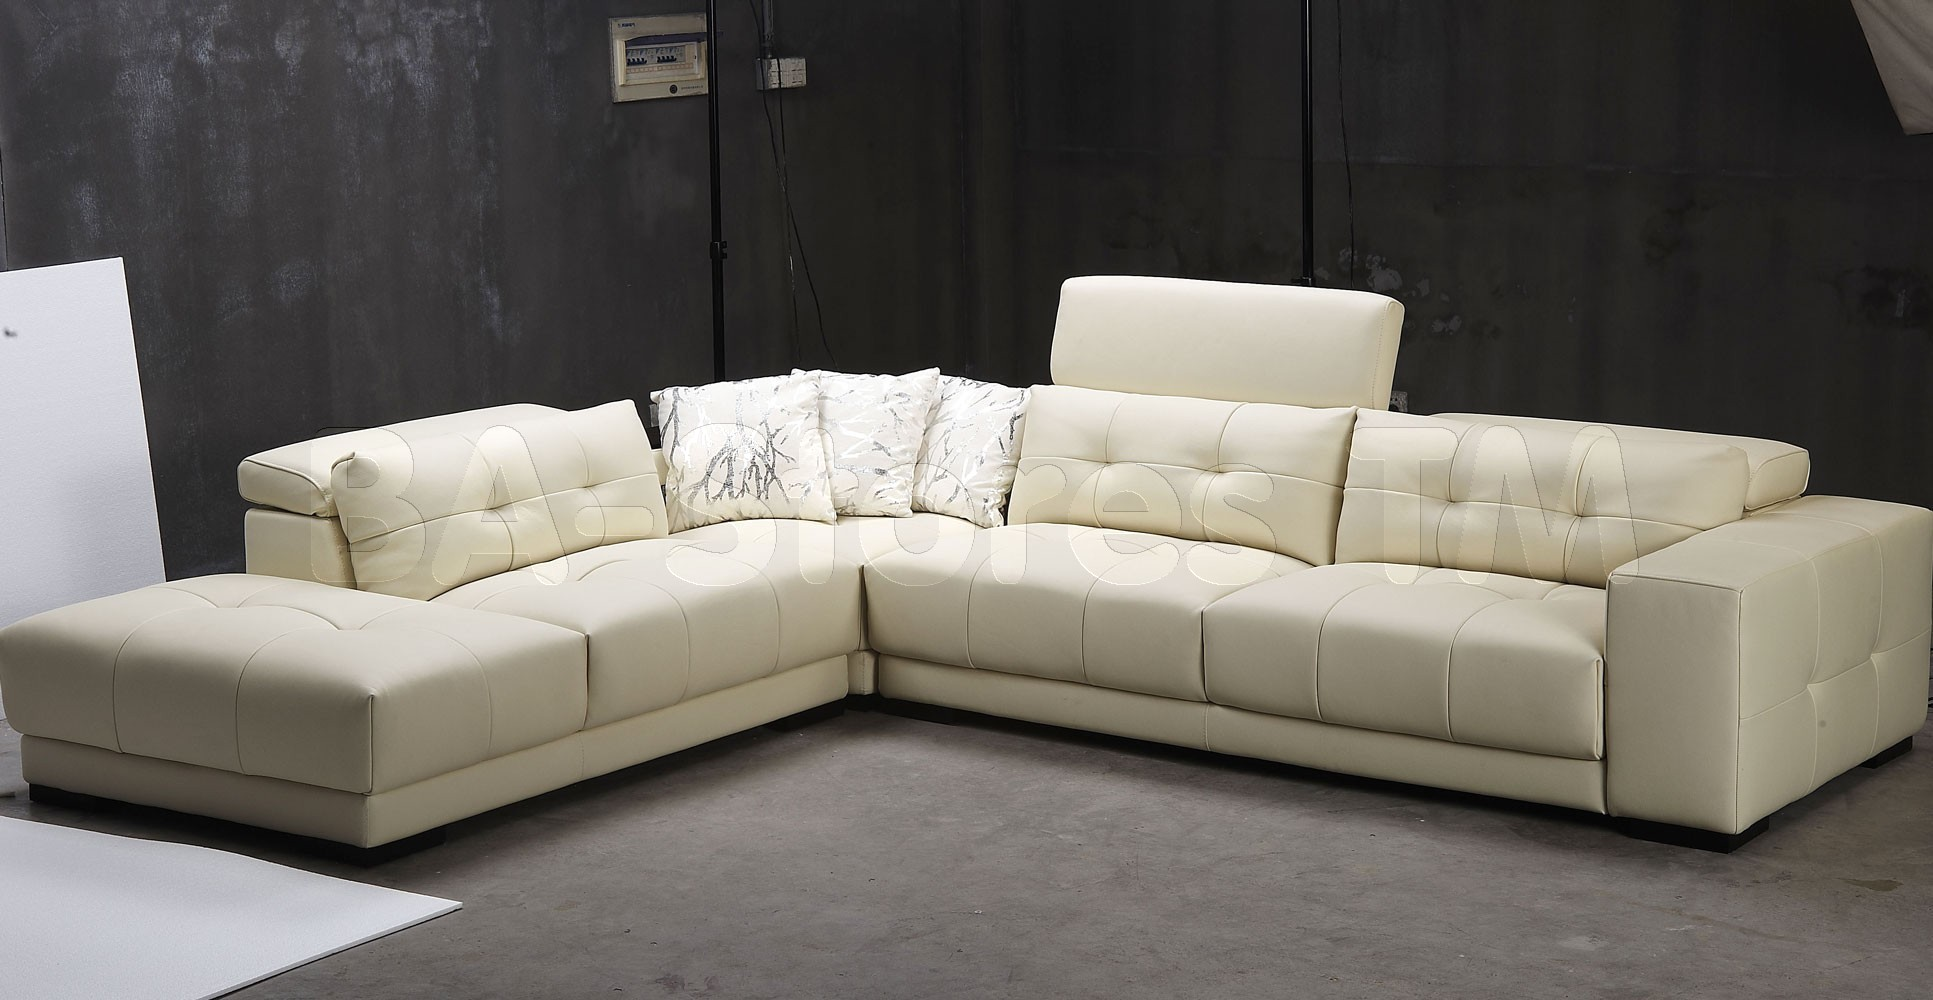 Living Room Design Charming White Leather Sectional For Living Room